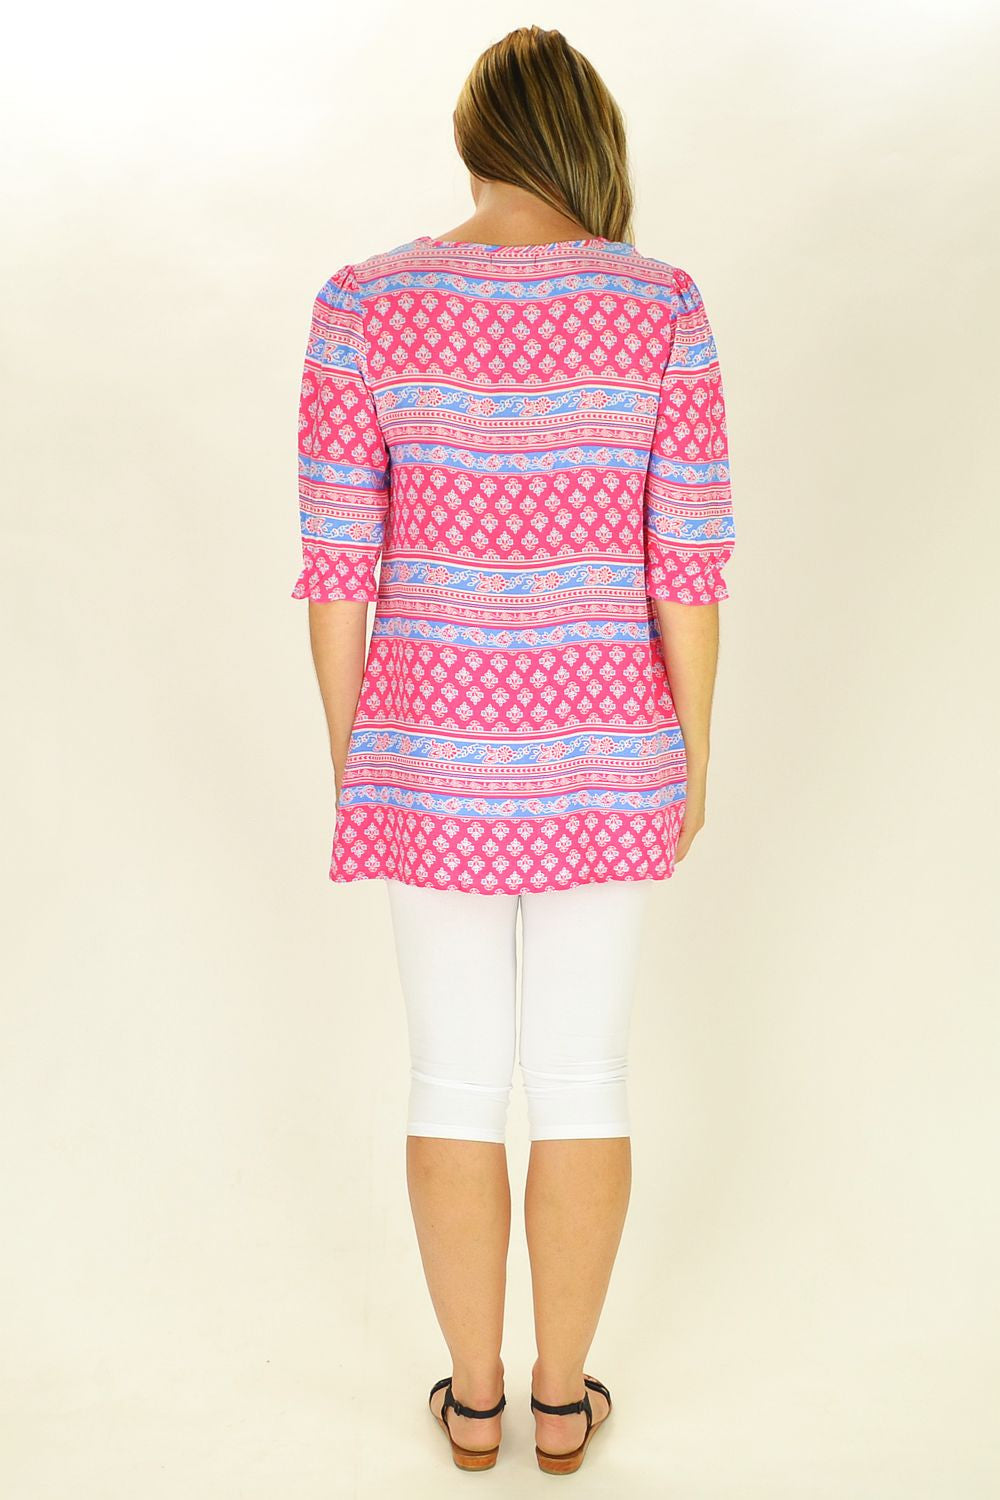 Mandy Tunic - at I Love Tunics @ www.ilovetunics.com = Number One! Tunics Destination